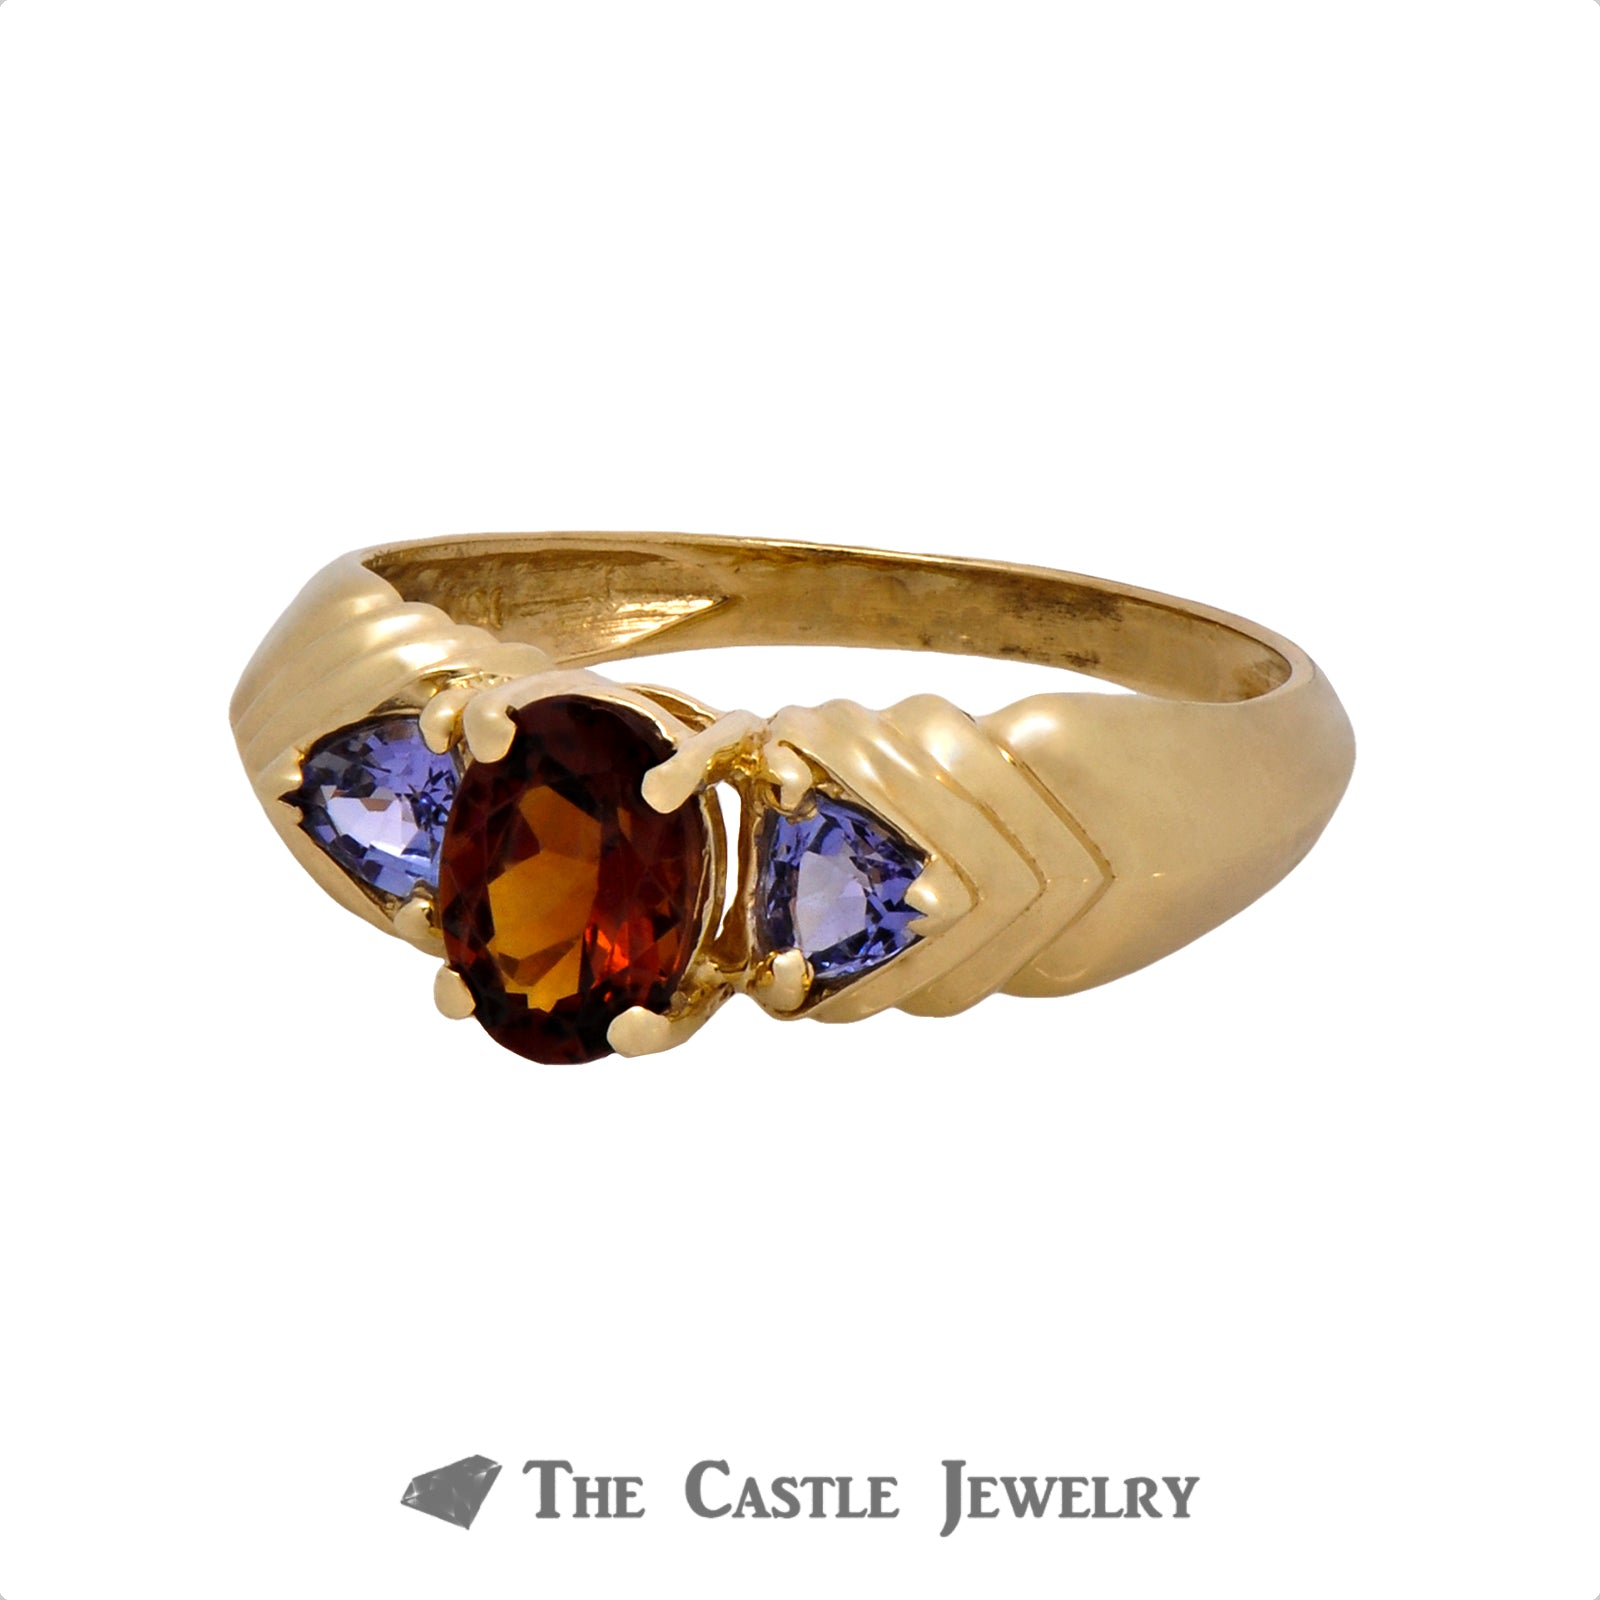 Oval Cut Garnet Ring with Trillion Cut Tanzanite Accents in 10k Yellow Gold Stair Step Setting